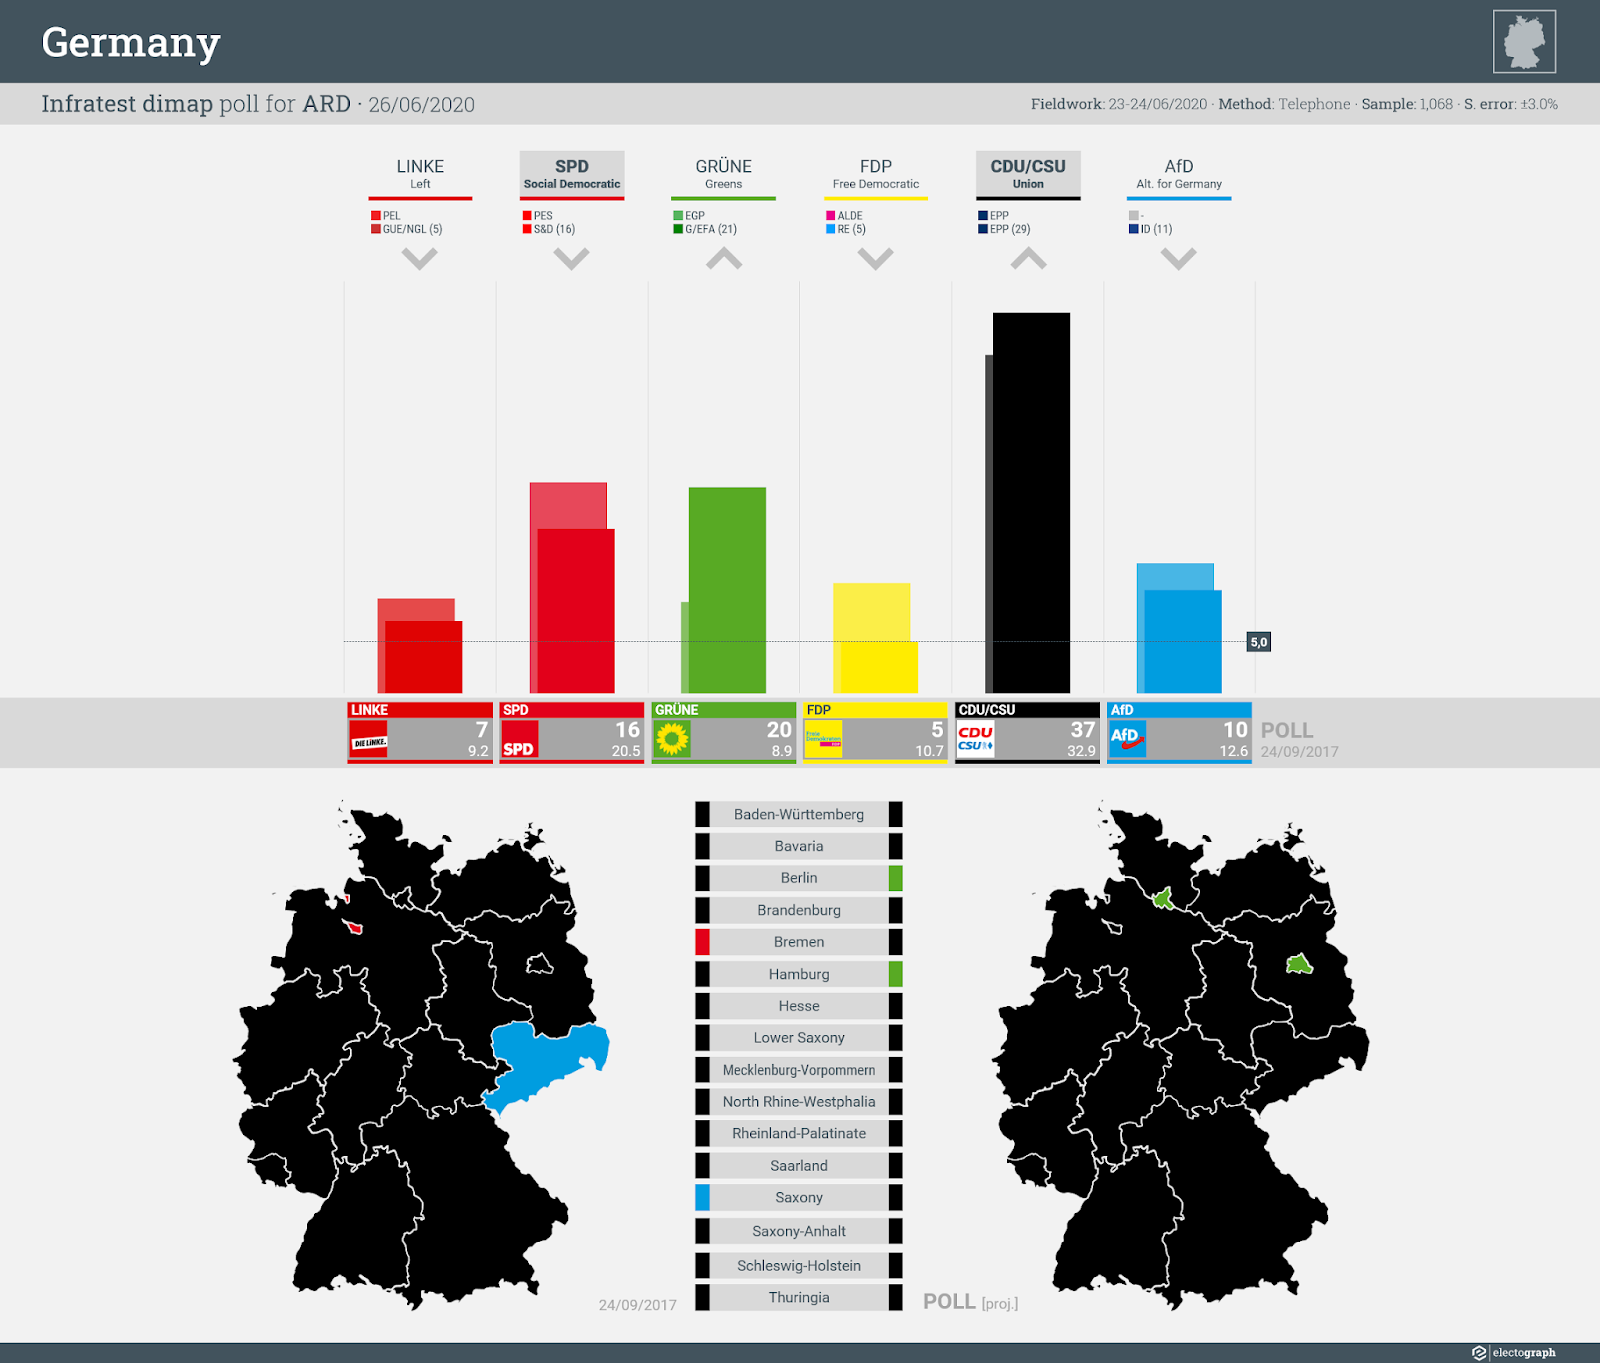 GERMANY: Infratest dimap poll chart for ARD, 26 June 2020